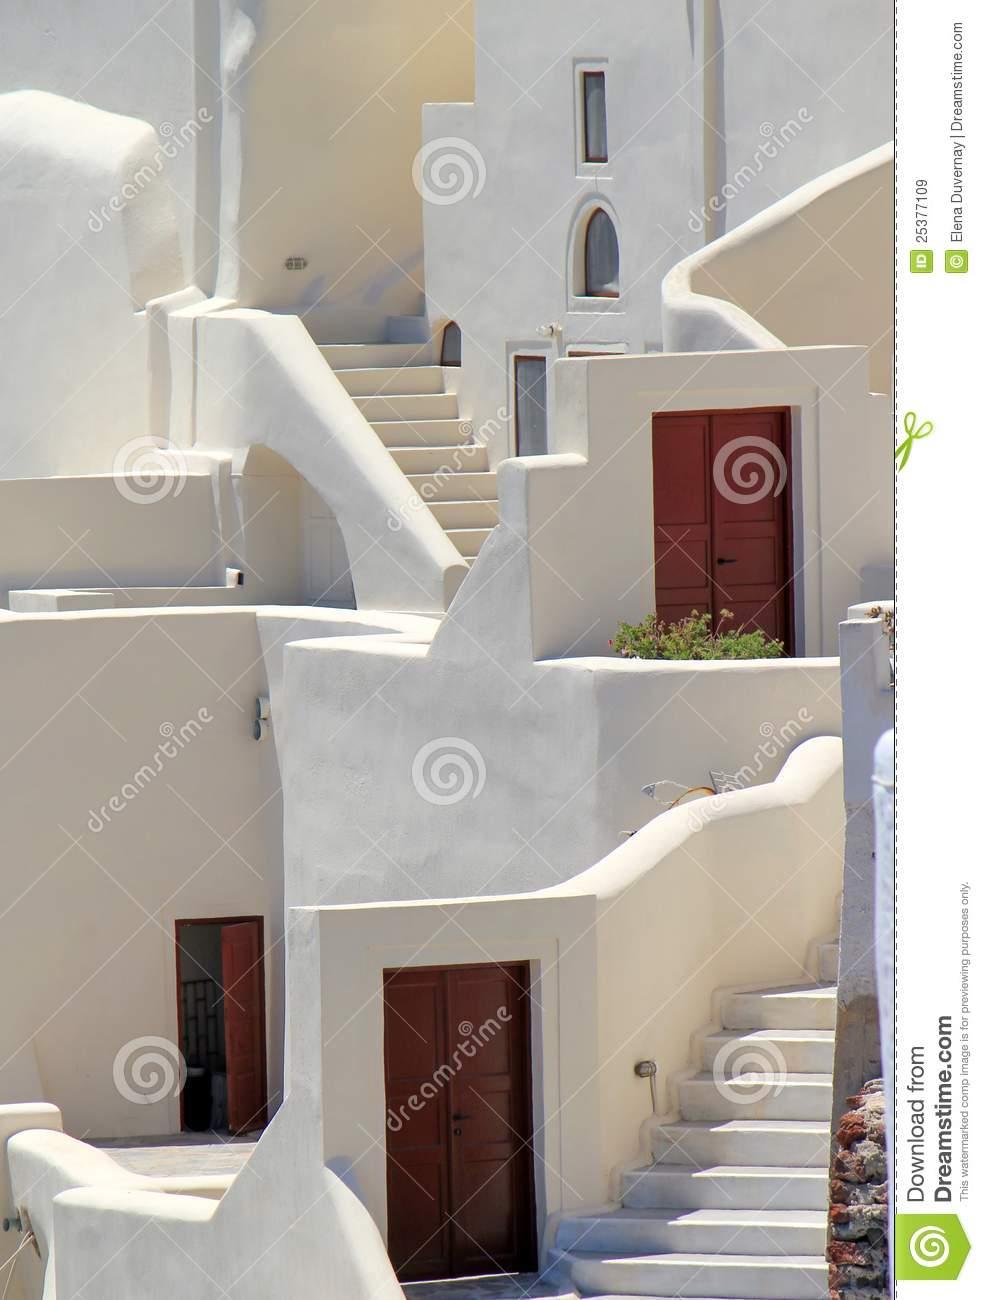 ... with stairs, window and doors at Oia, Santorini, Greece, by sunny day